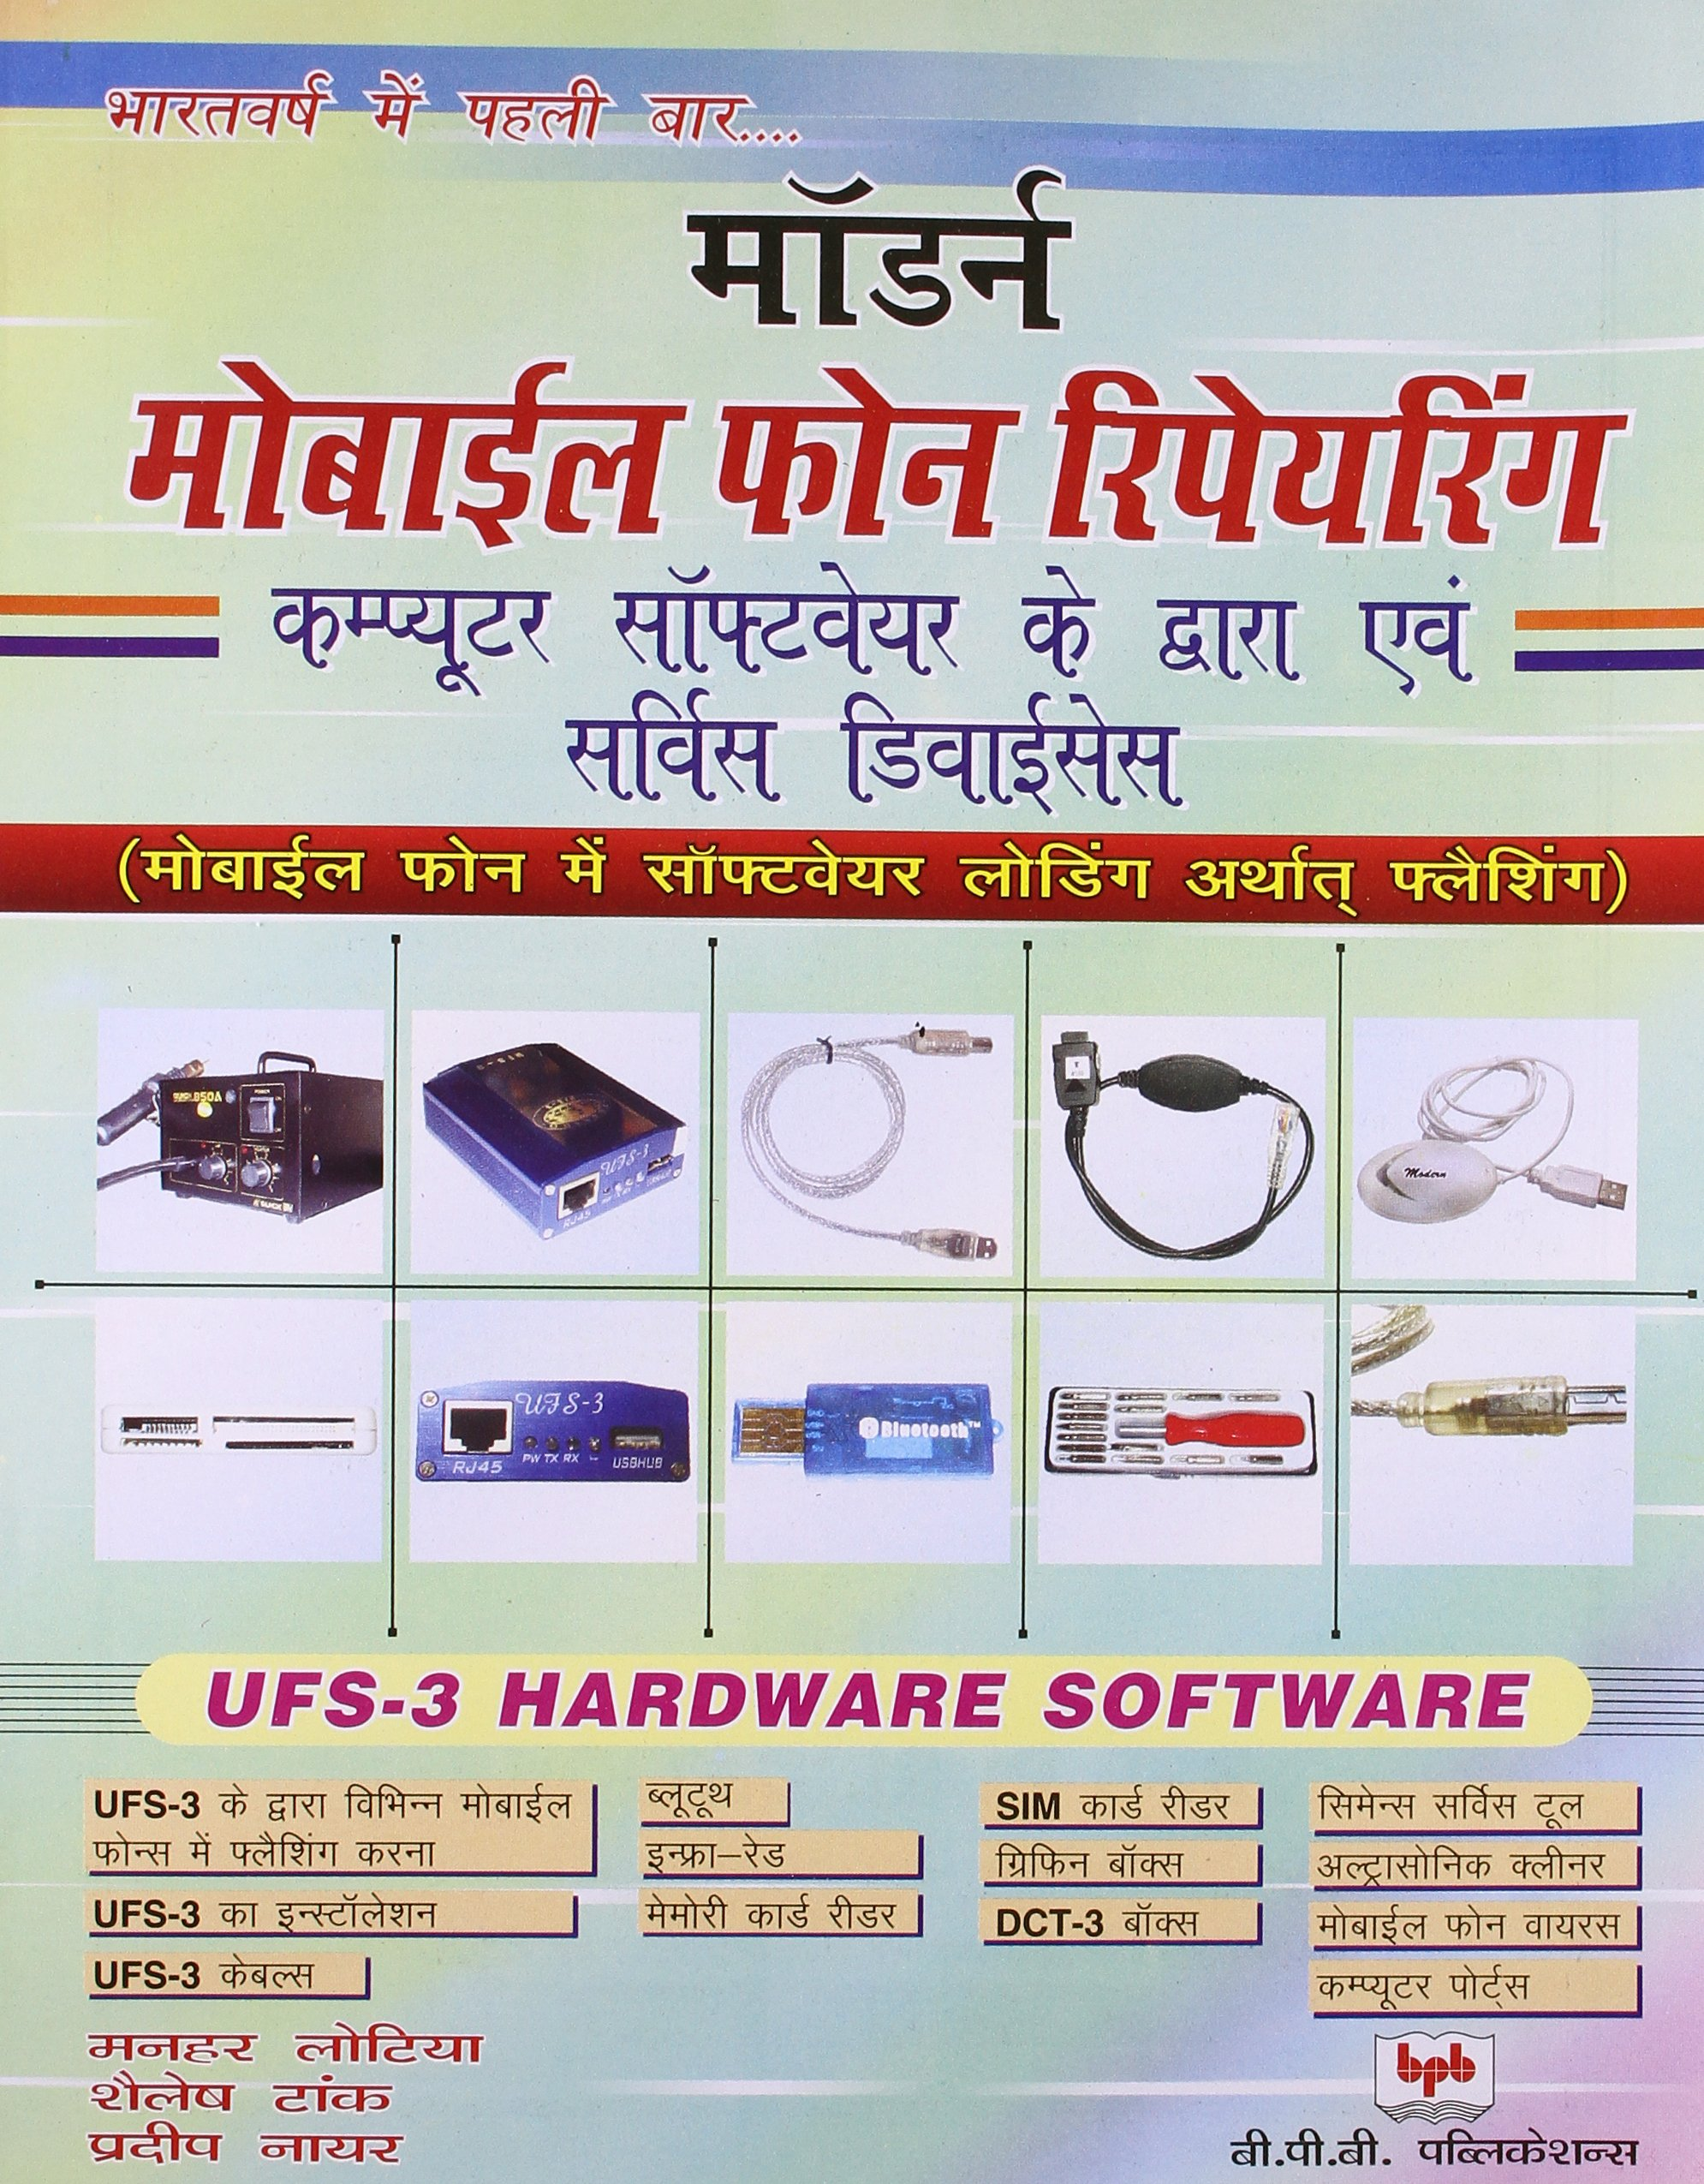 Buy Modern Mobile Phone Repairing-Computer Software Ke Dware And Service  Devices Book Online at Low Prices in India | Modern Mobile Phone Repairing-Computer  ...